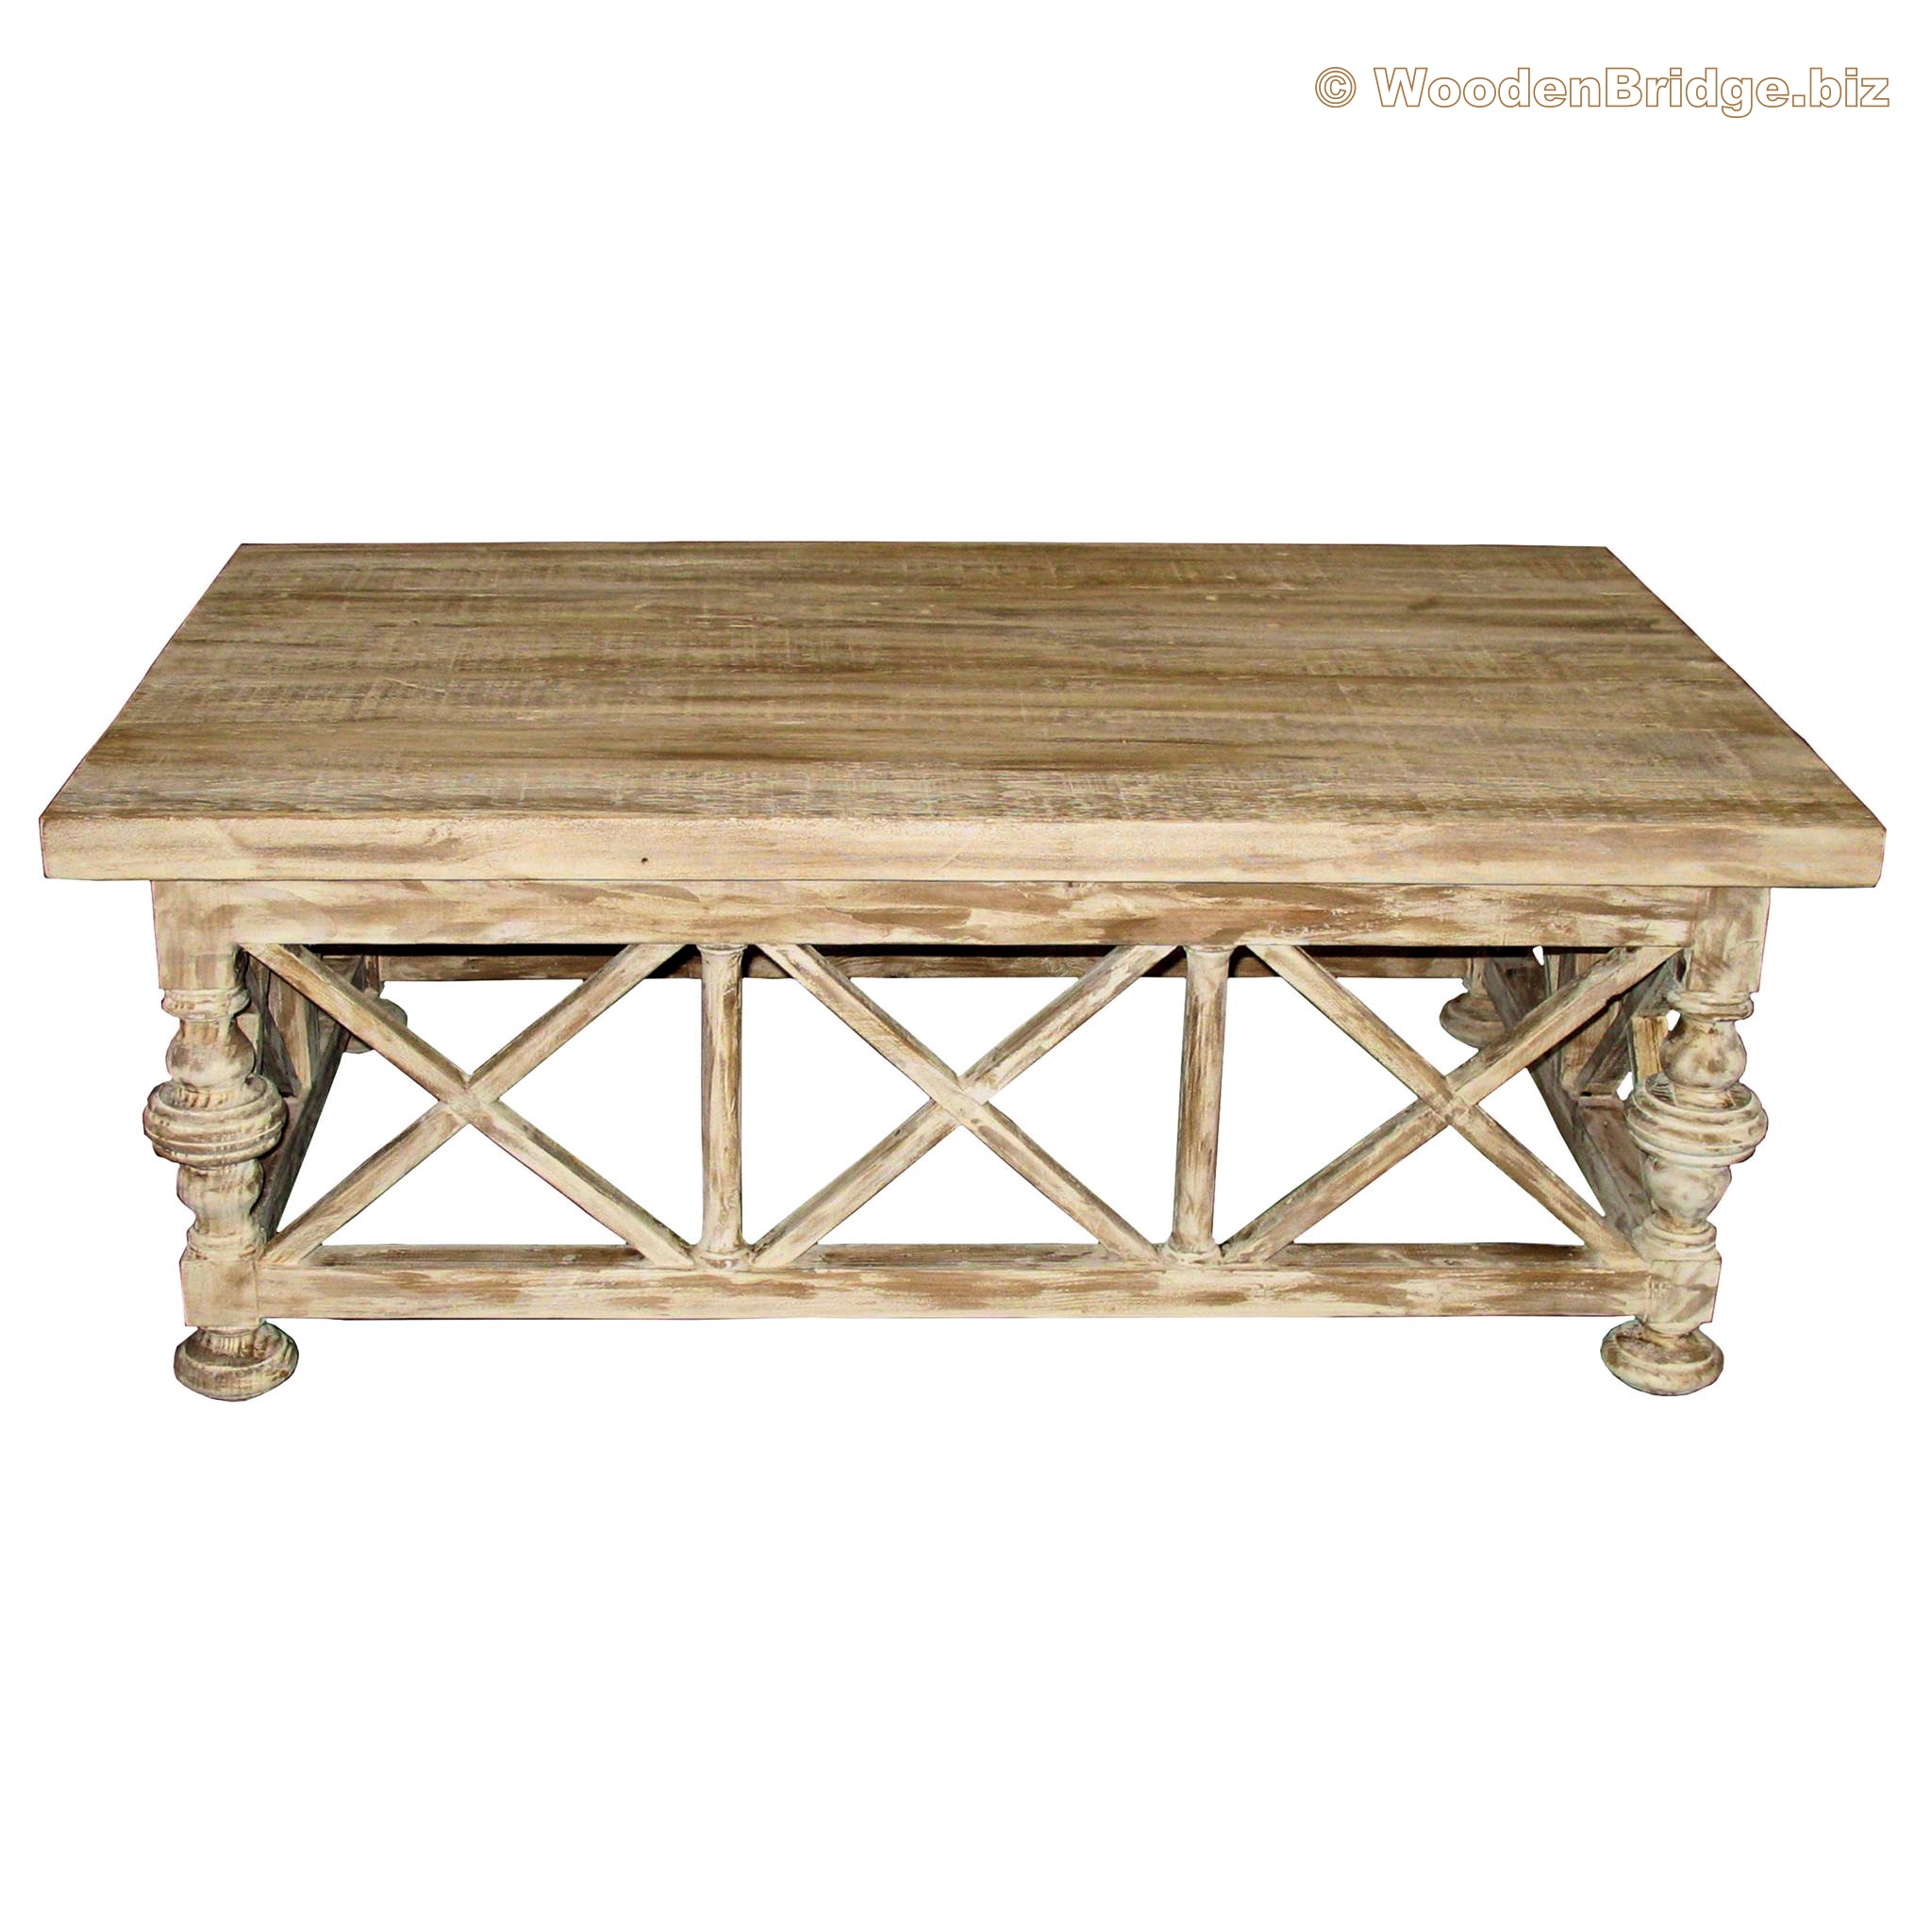 Reclaimed Wood Coffee Tables Ideas – 2048 x 2048